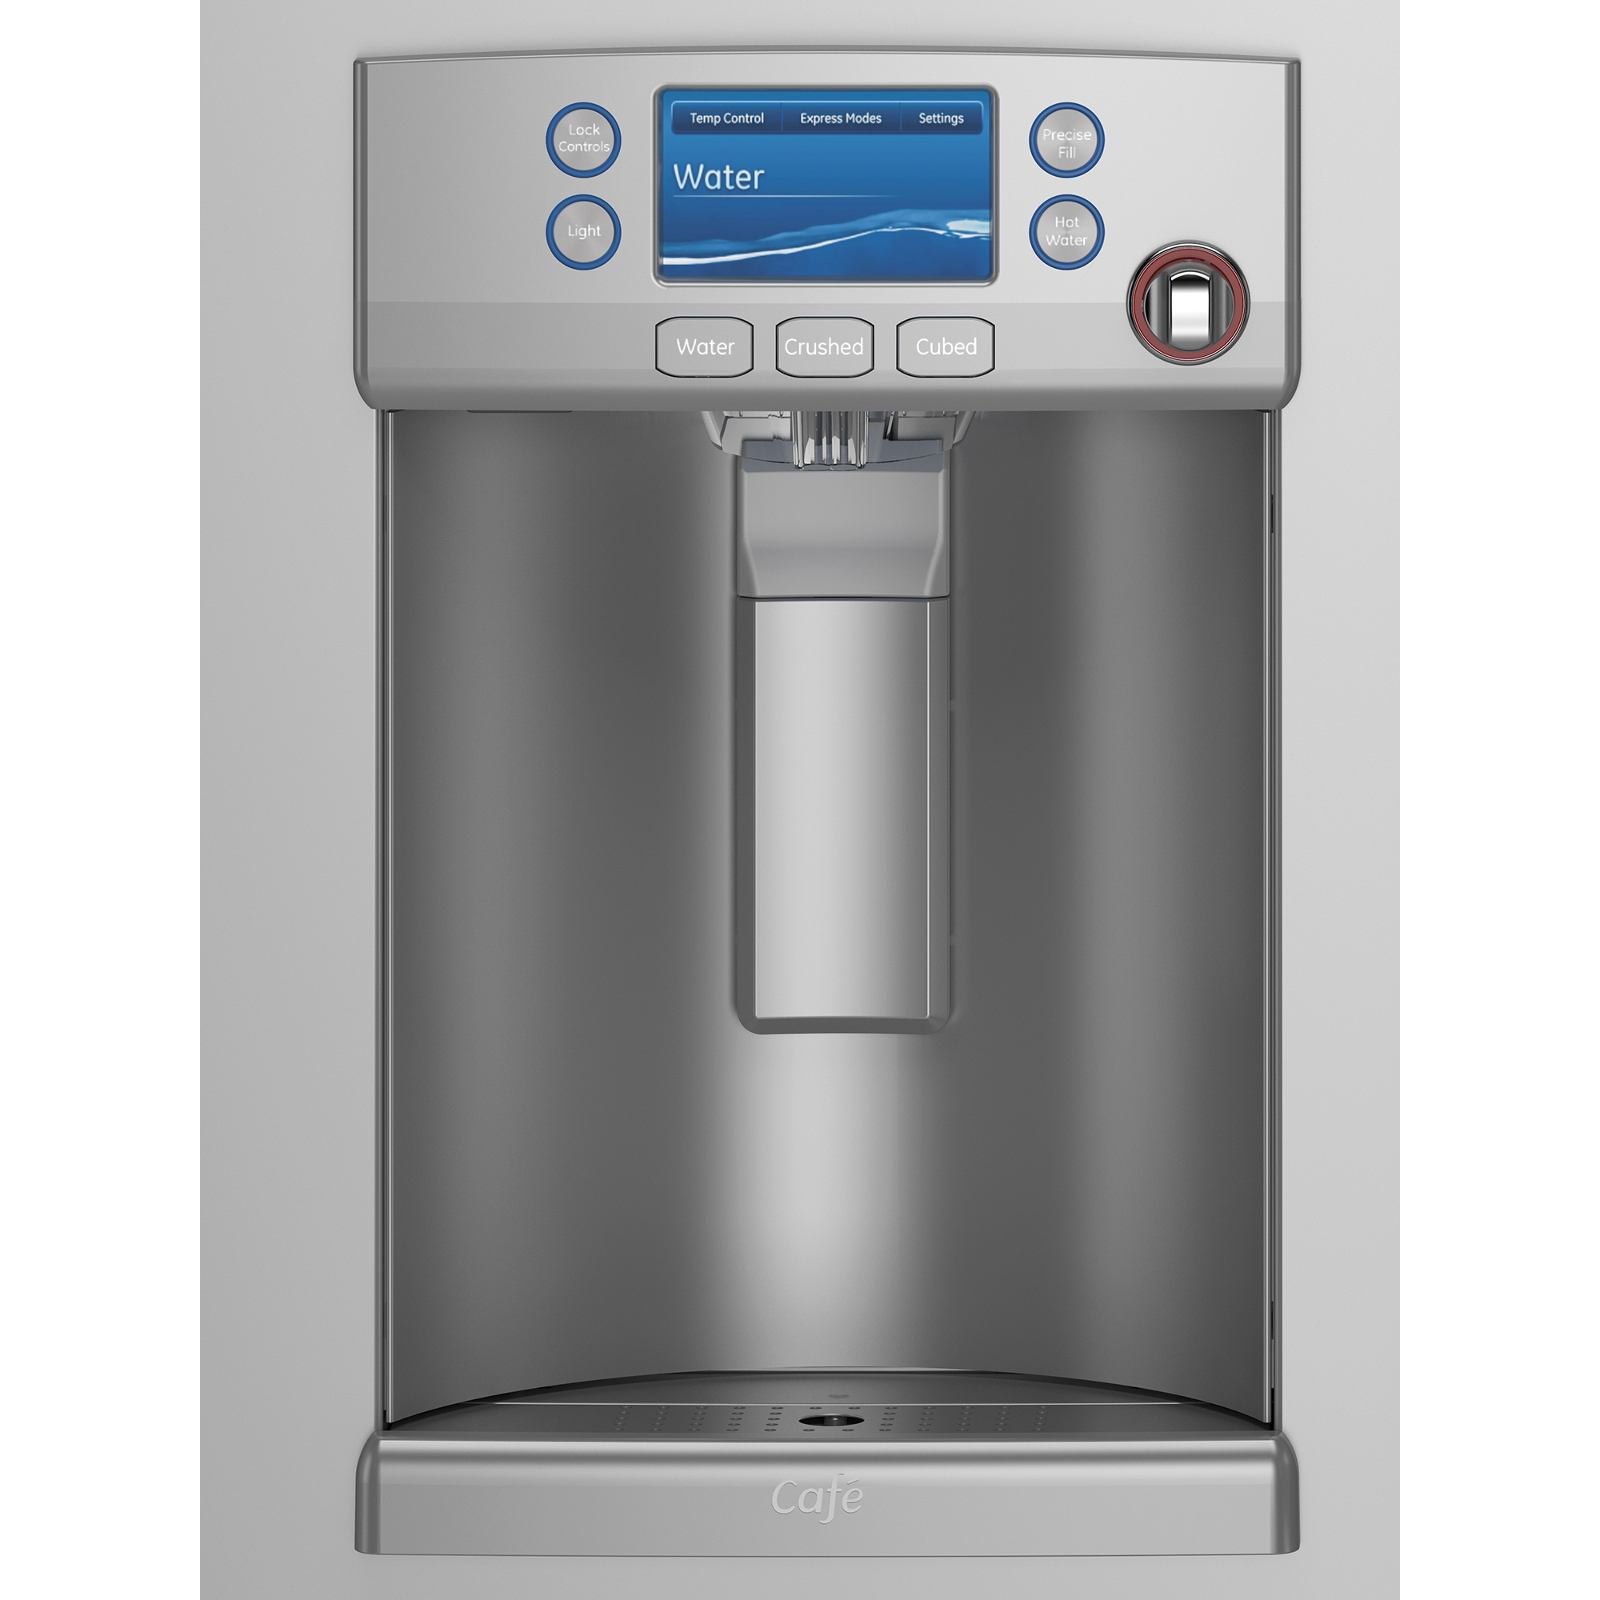 GE Cafe™ Series CYE22TSHSS 22.1 cu. ft. Counter-Depth French-Door Refrigerator W/ Hot Water Dispenser - Stainless Steel